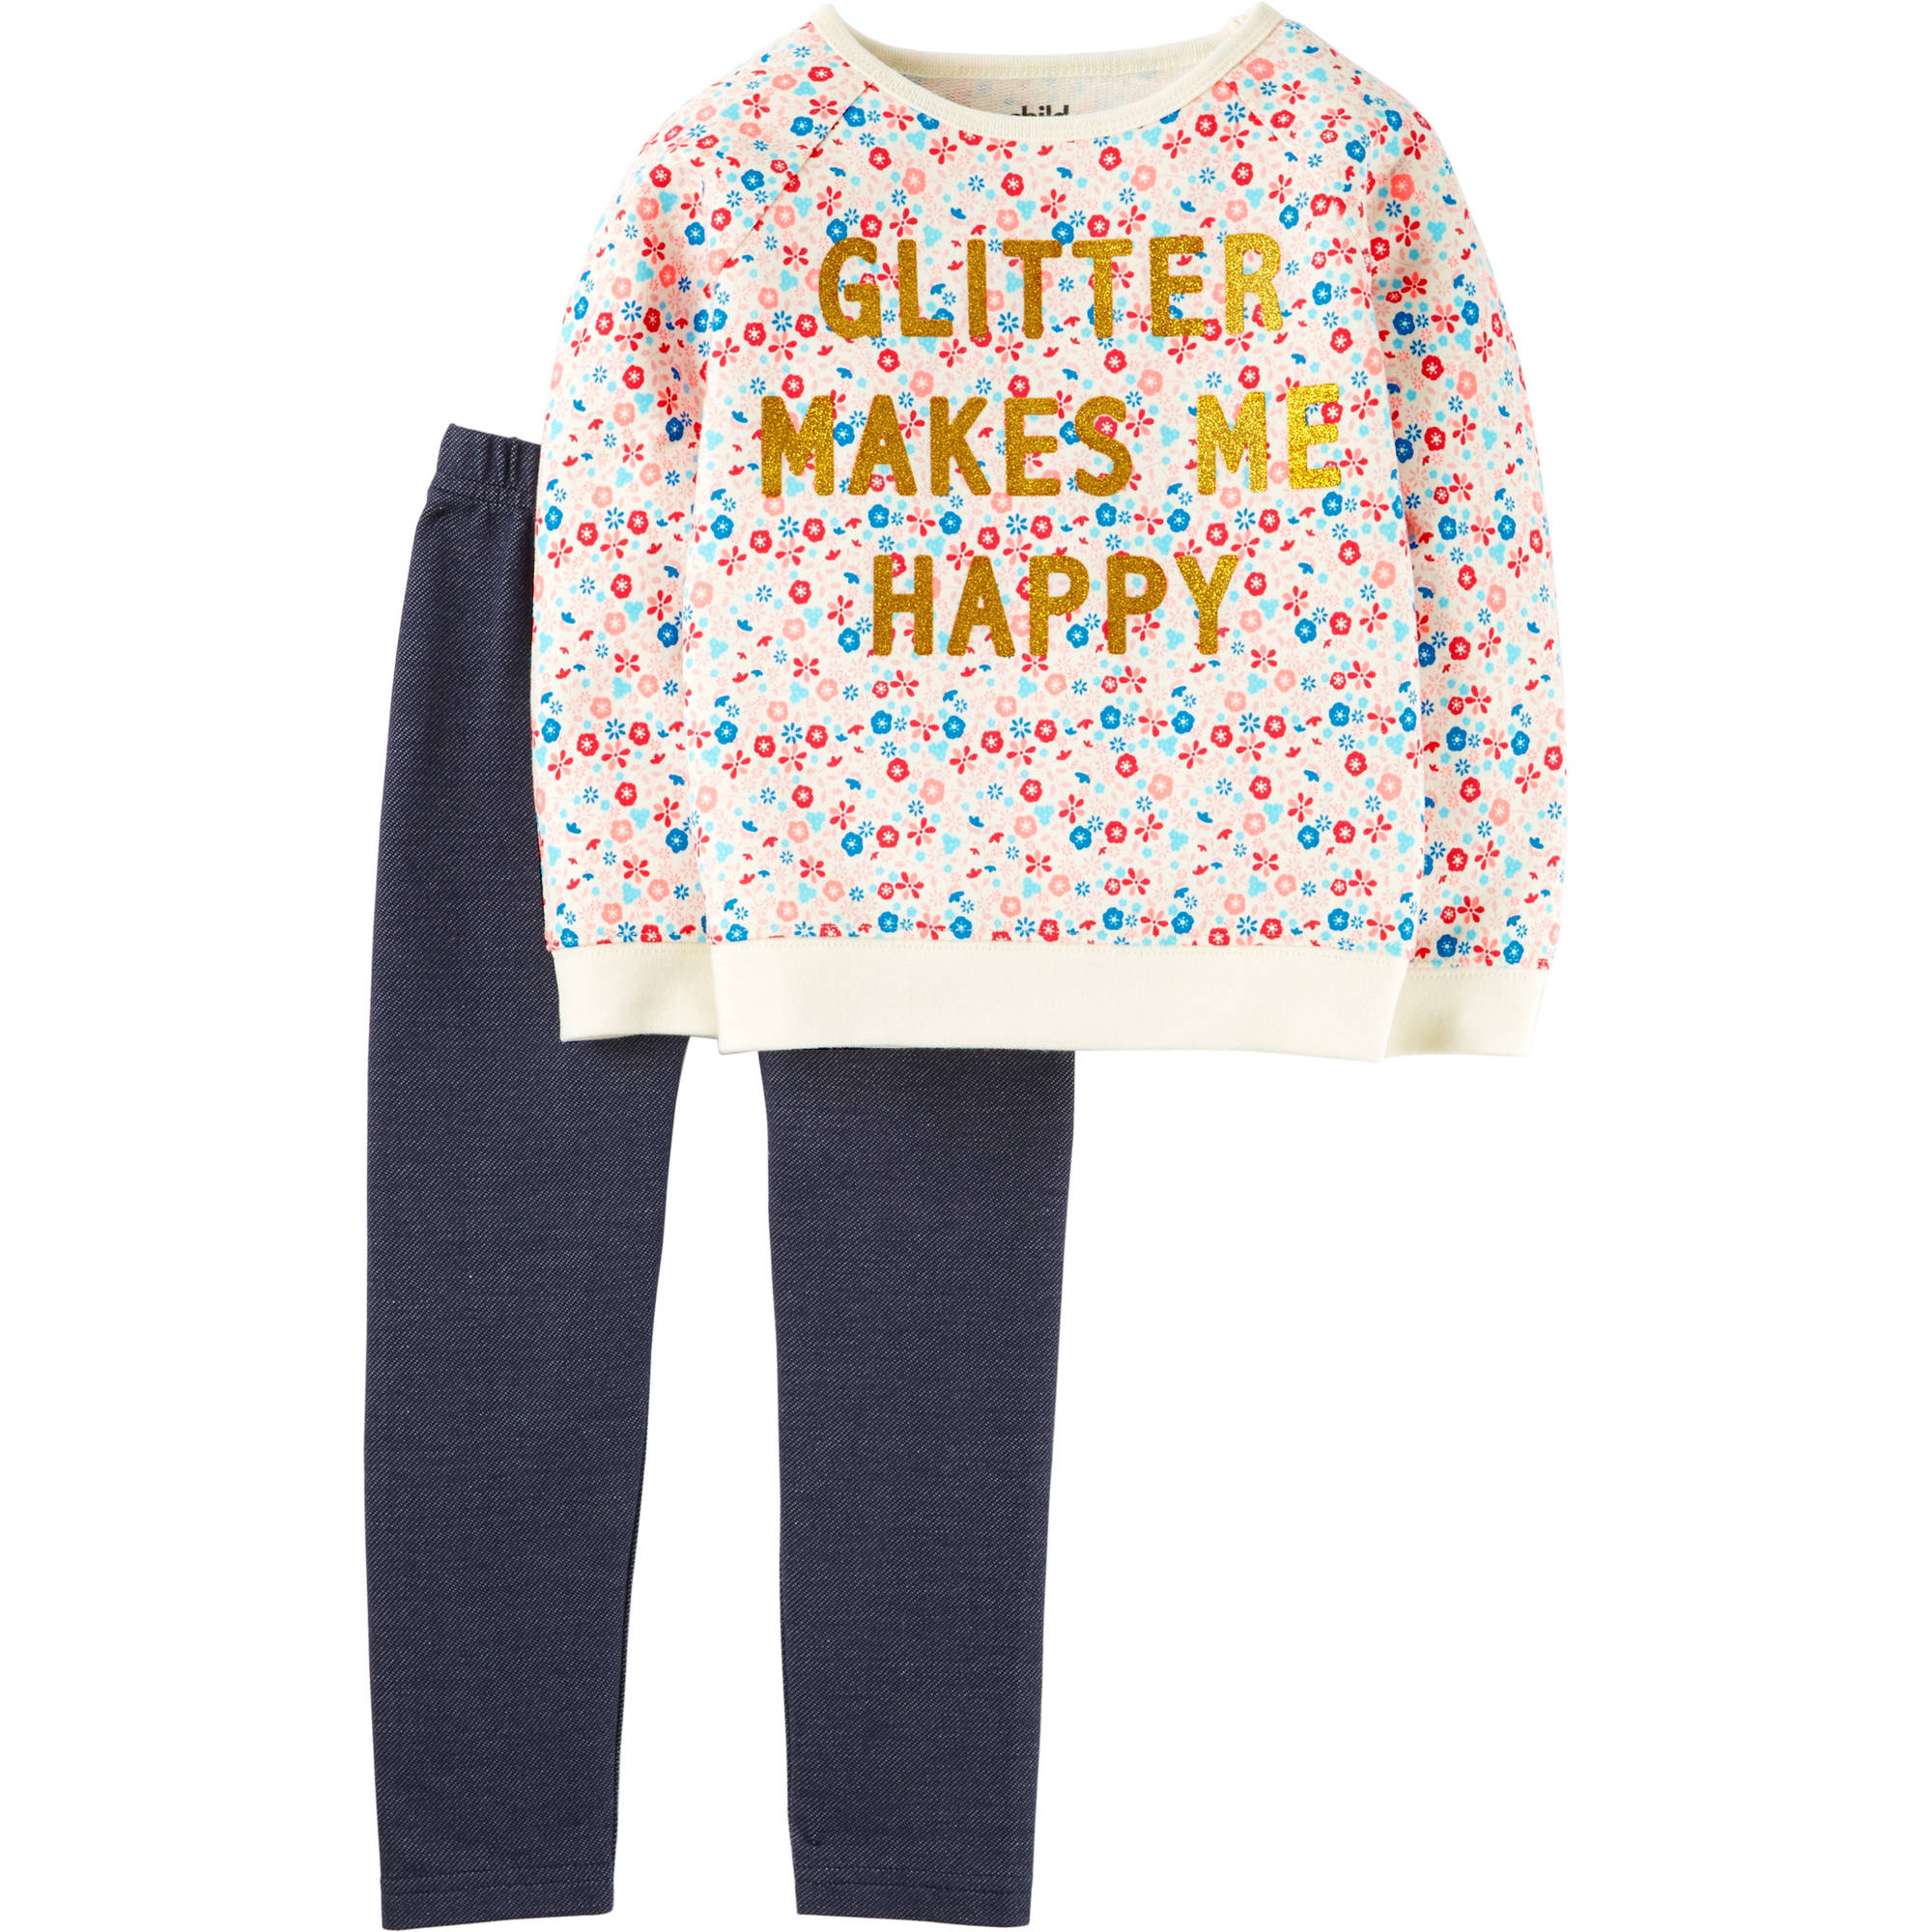 Child of Mine by Carter's Toddler Girl Long Sleeve Shirt and Pant Outfit Set